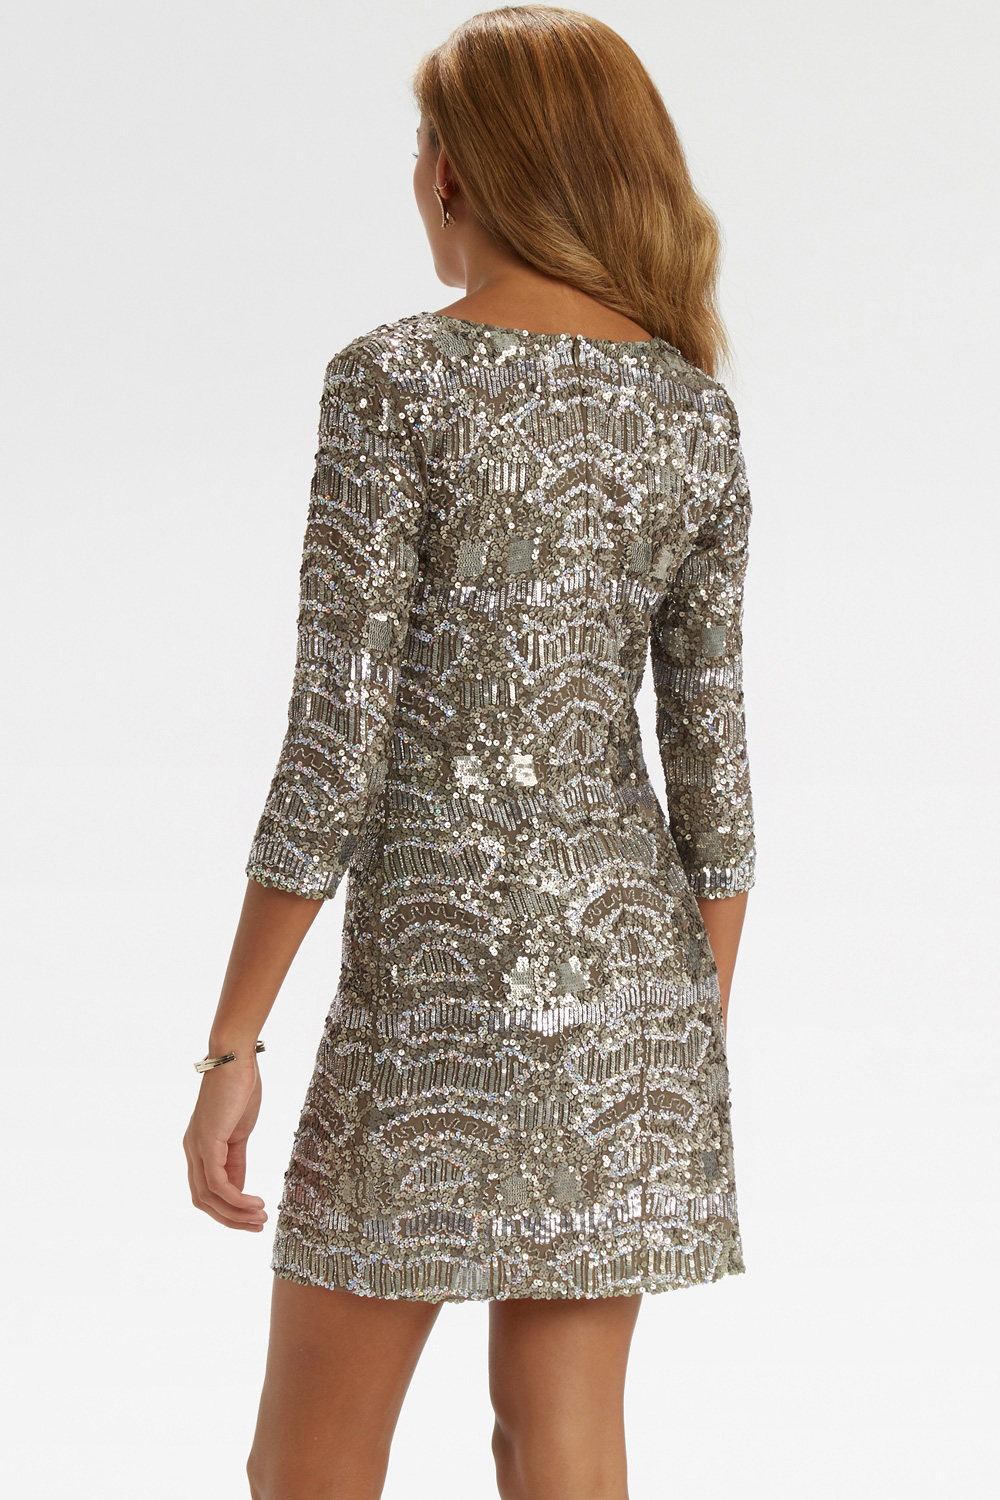 Oasis Sequin Embellished Dress in Metallic  Lyst